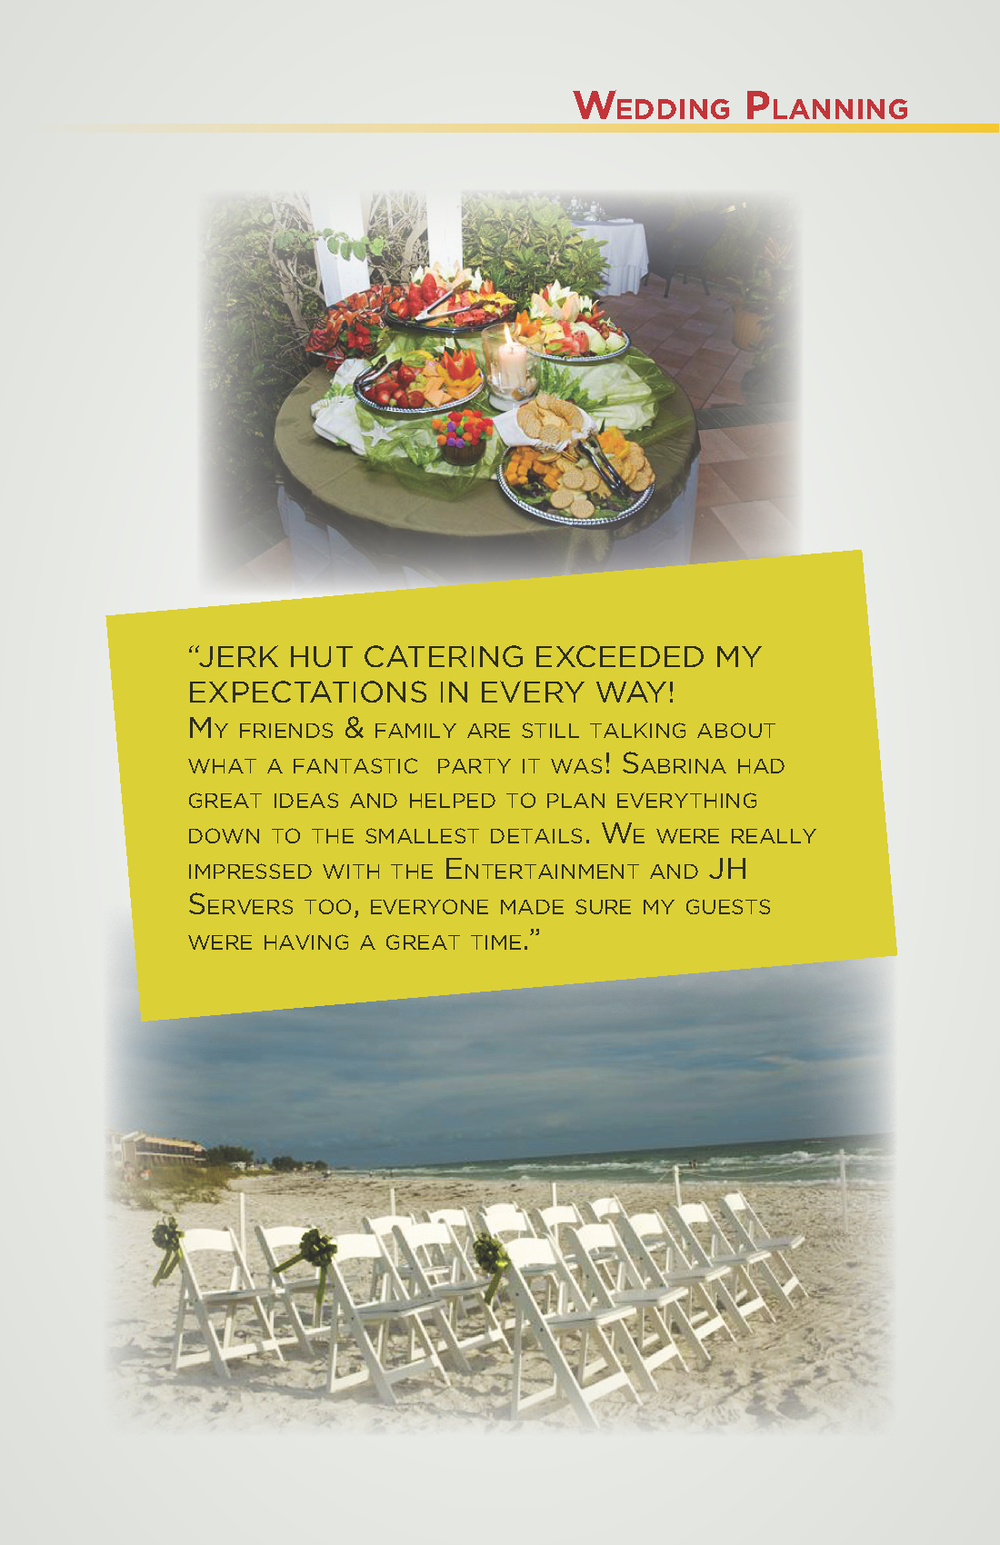 JHCatering_booklet2012-nvpg_NEW_6_15_15_Page_21.png